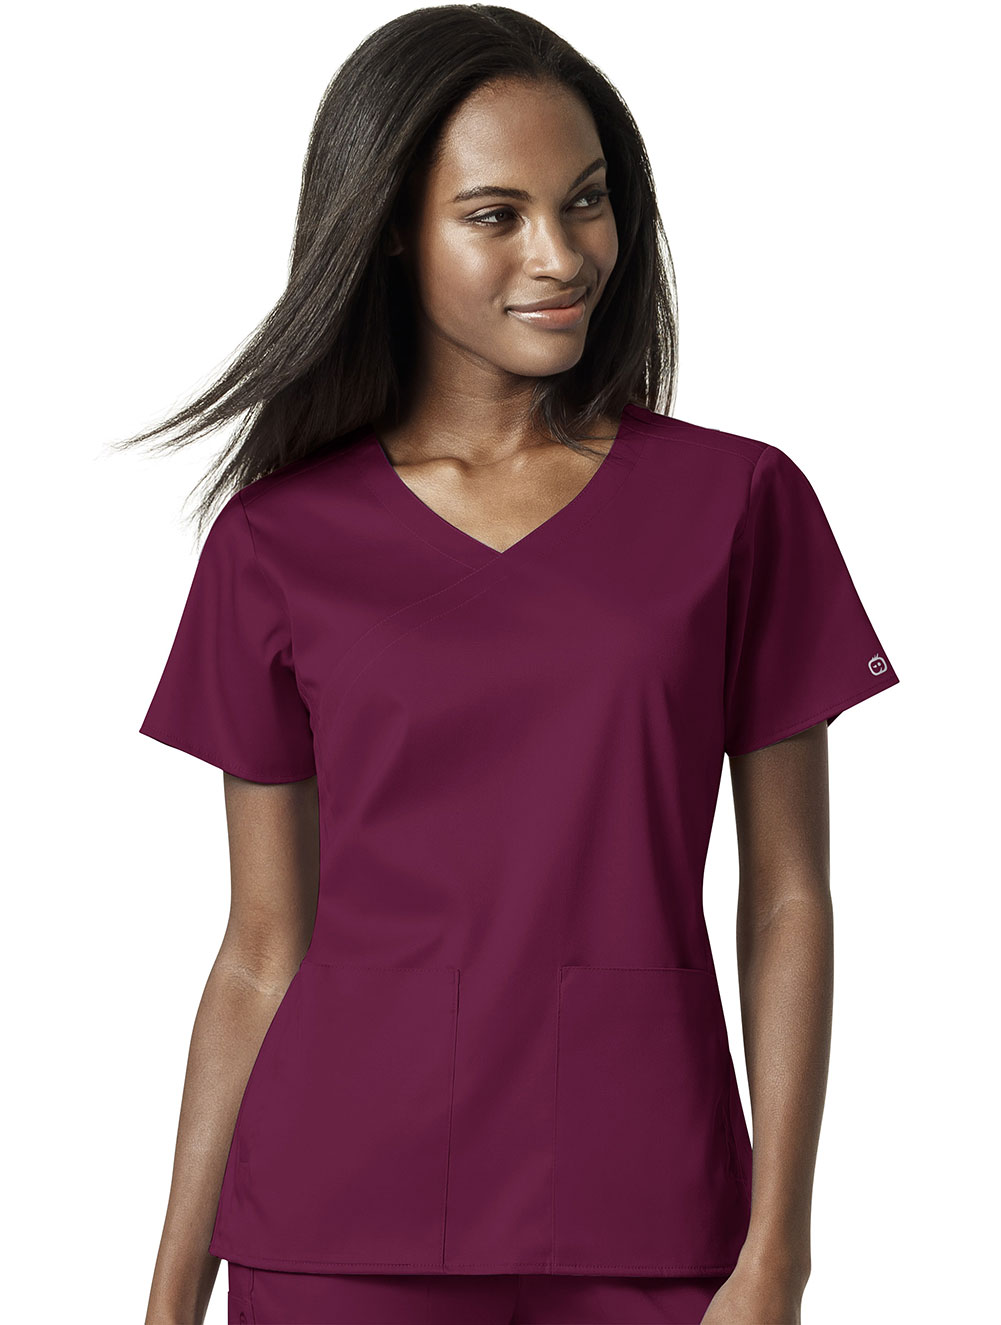 Women's 4 Pocket Wrap Top